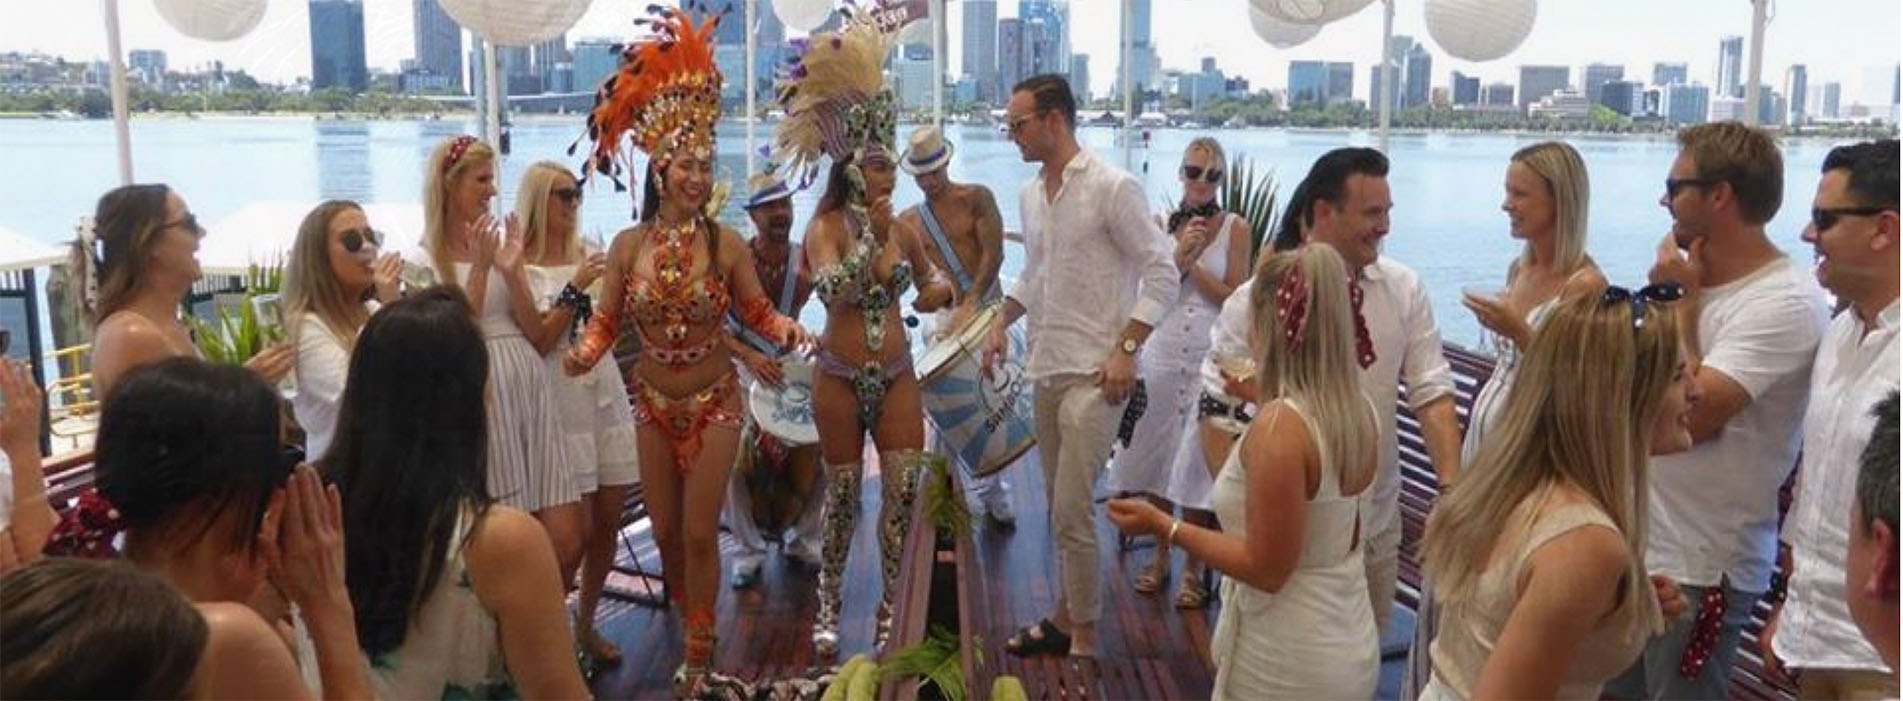 PADDLESHIP DECOY party Brazilian dancers Perth WA